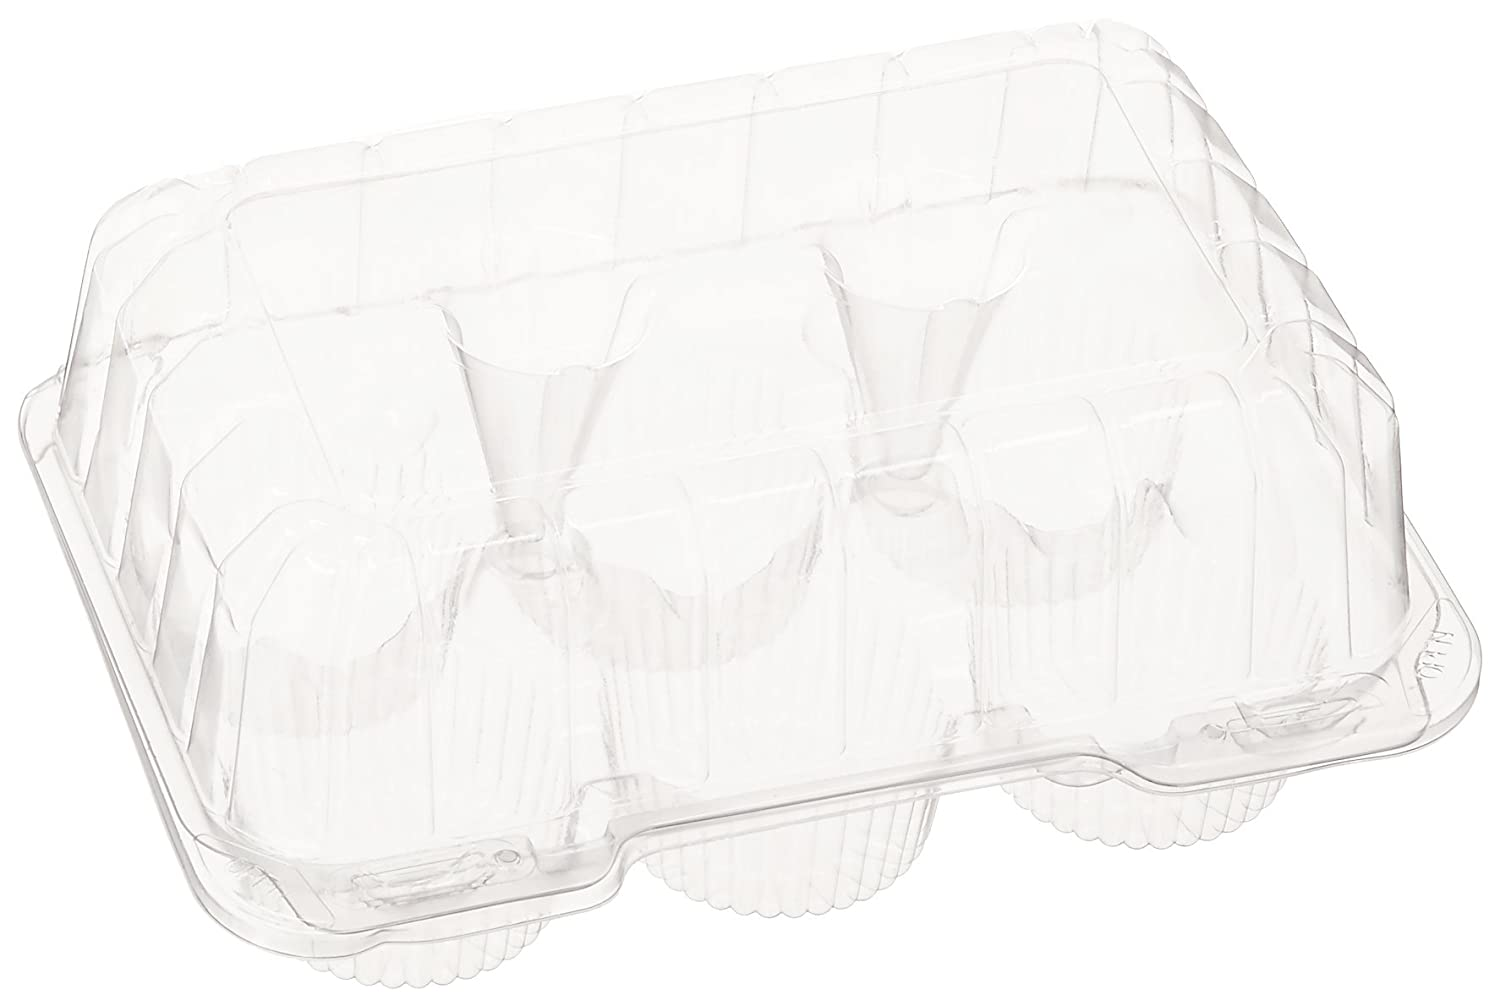 Oasis Supply PJP LBH-6656-12 6-Compartment Cupcake Container with Hinged Lid, Clear CakeSupply